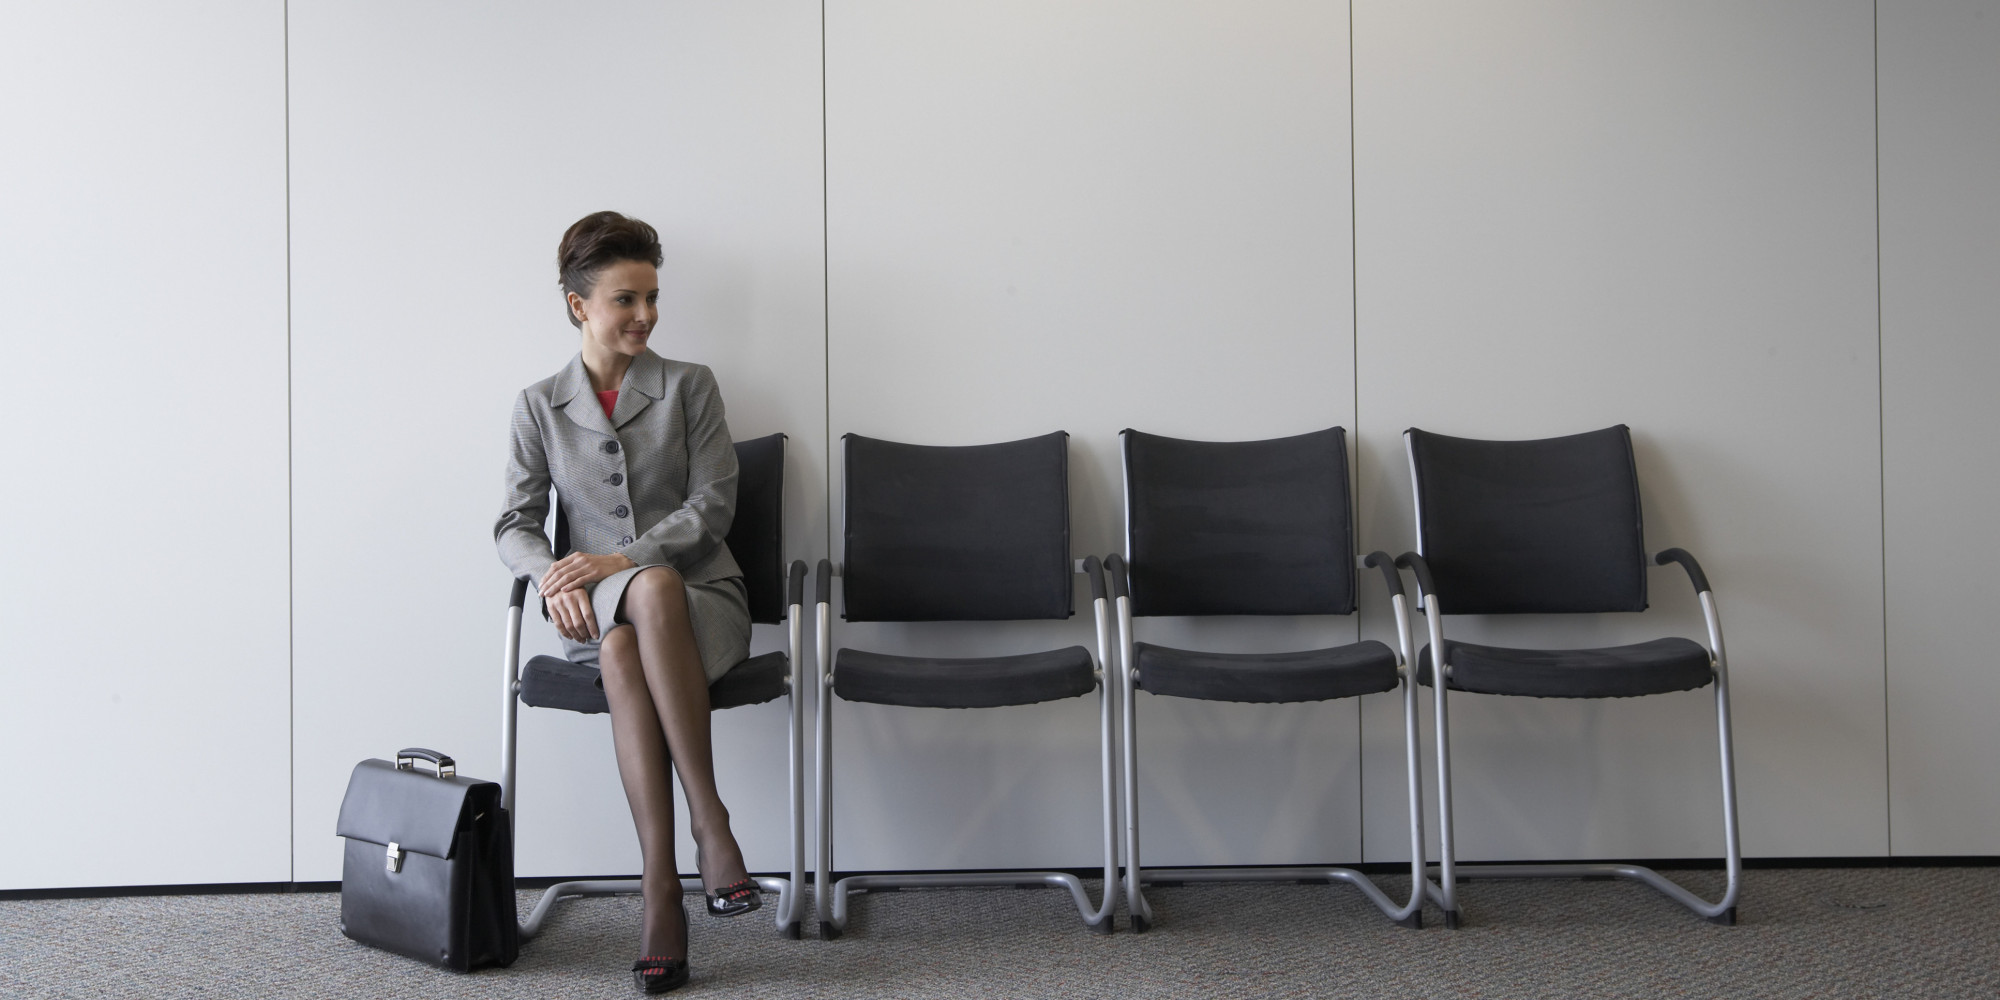 Businesswoman seated indoors, by briefcase, smiling